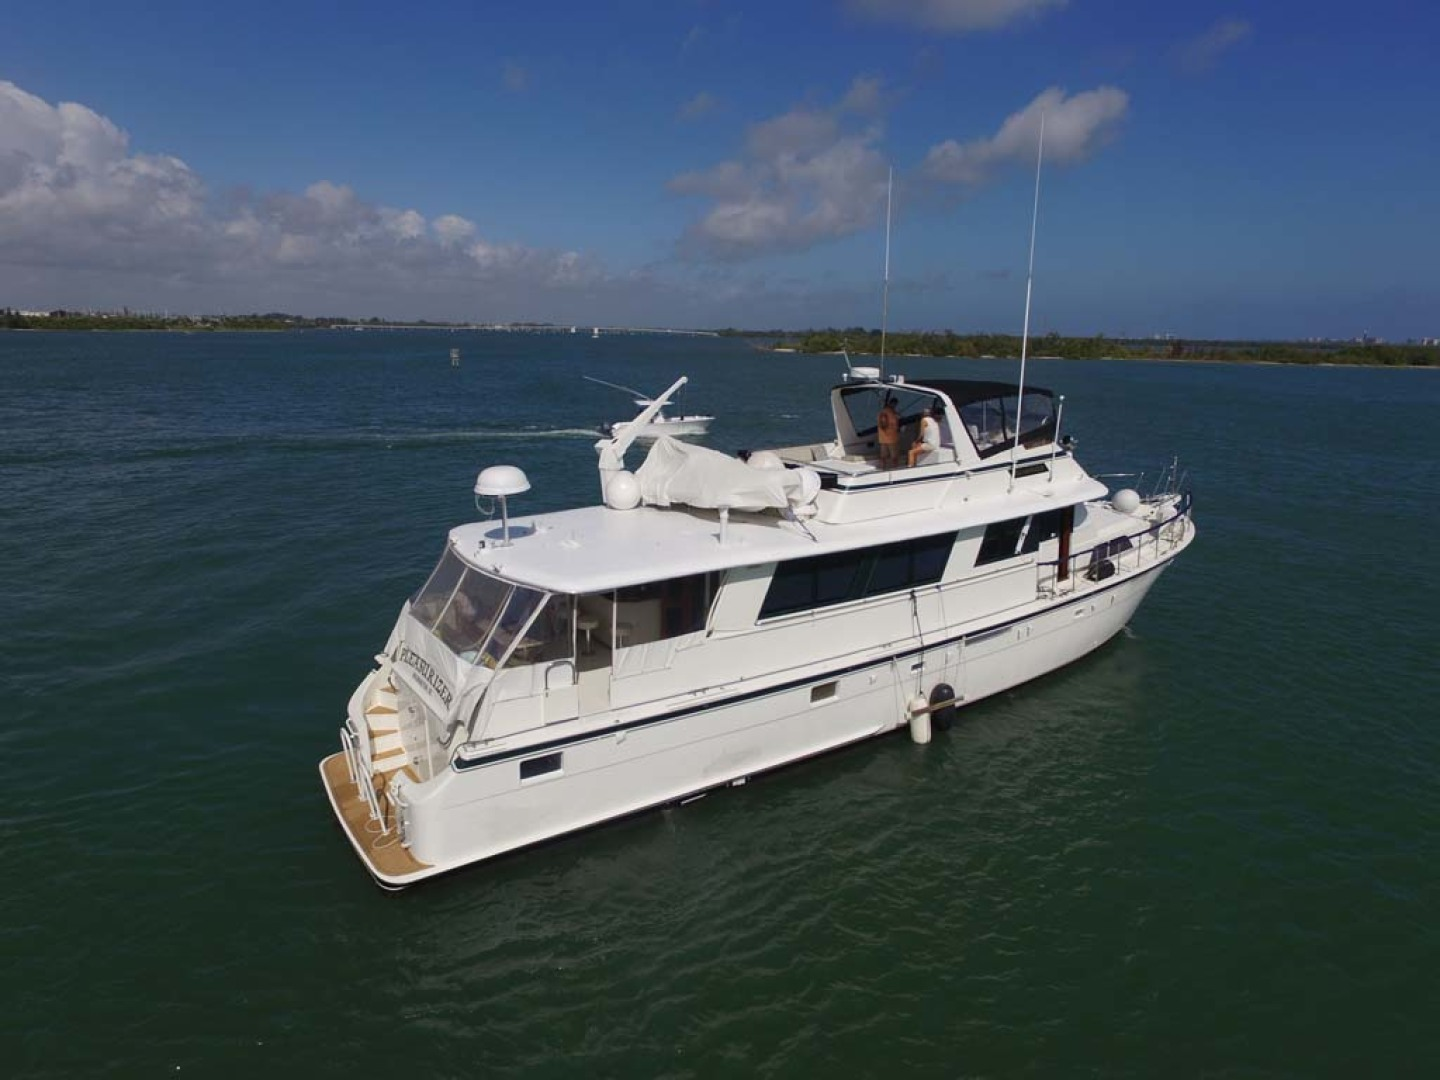 Hatteras-74 Motor Yacht 1981-Pleasurizer Fort Pierce-Florida-United States-Starboard Side-1122240 | Thumbnail